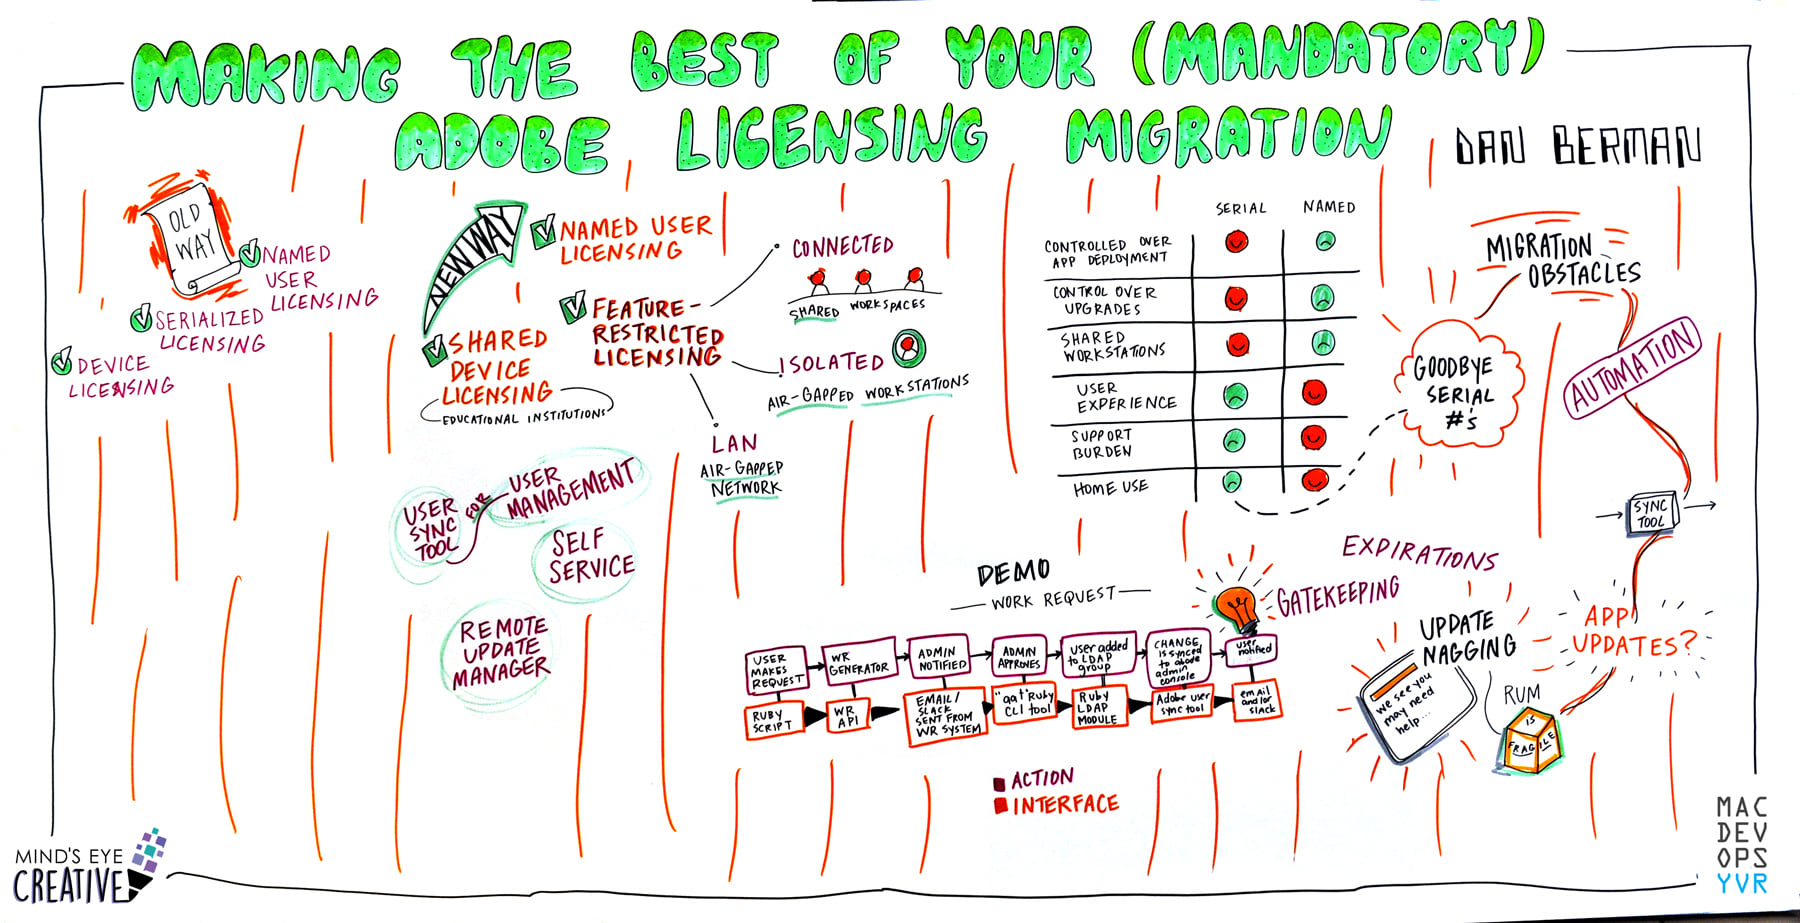 Adobe Licensing migration sketch-note by Mind's Eye Creative